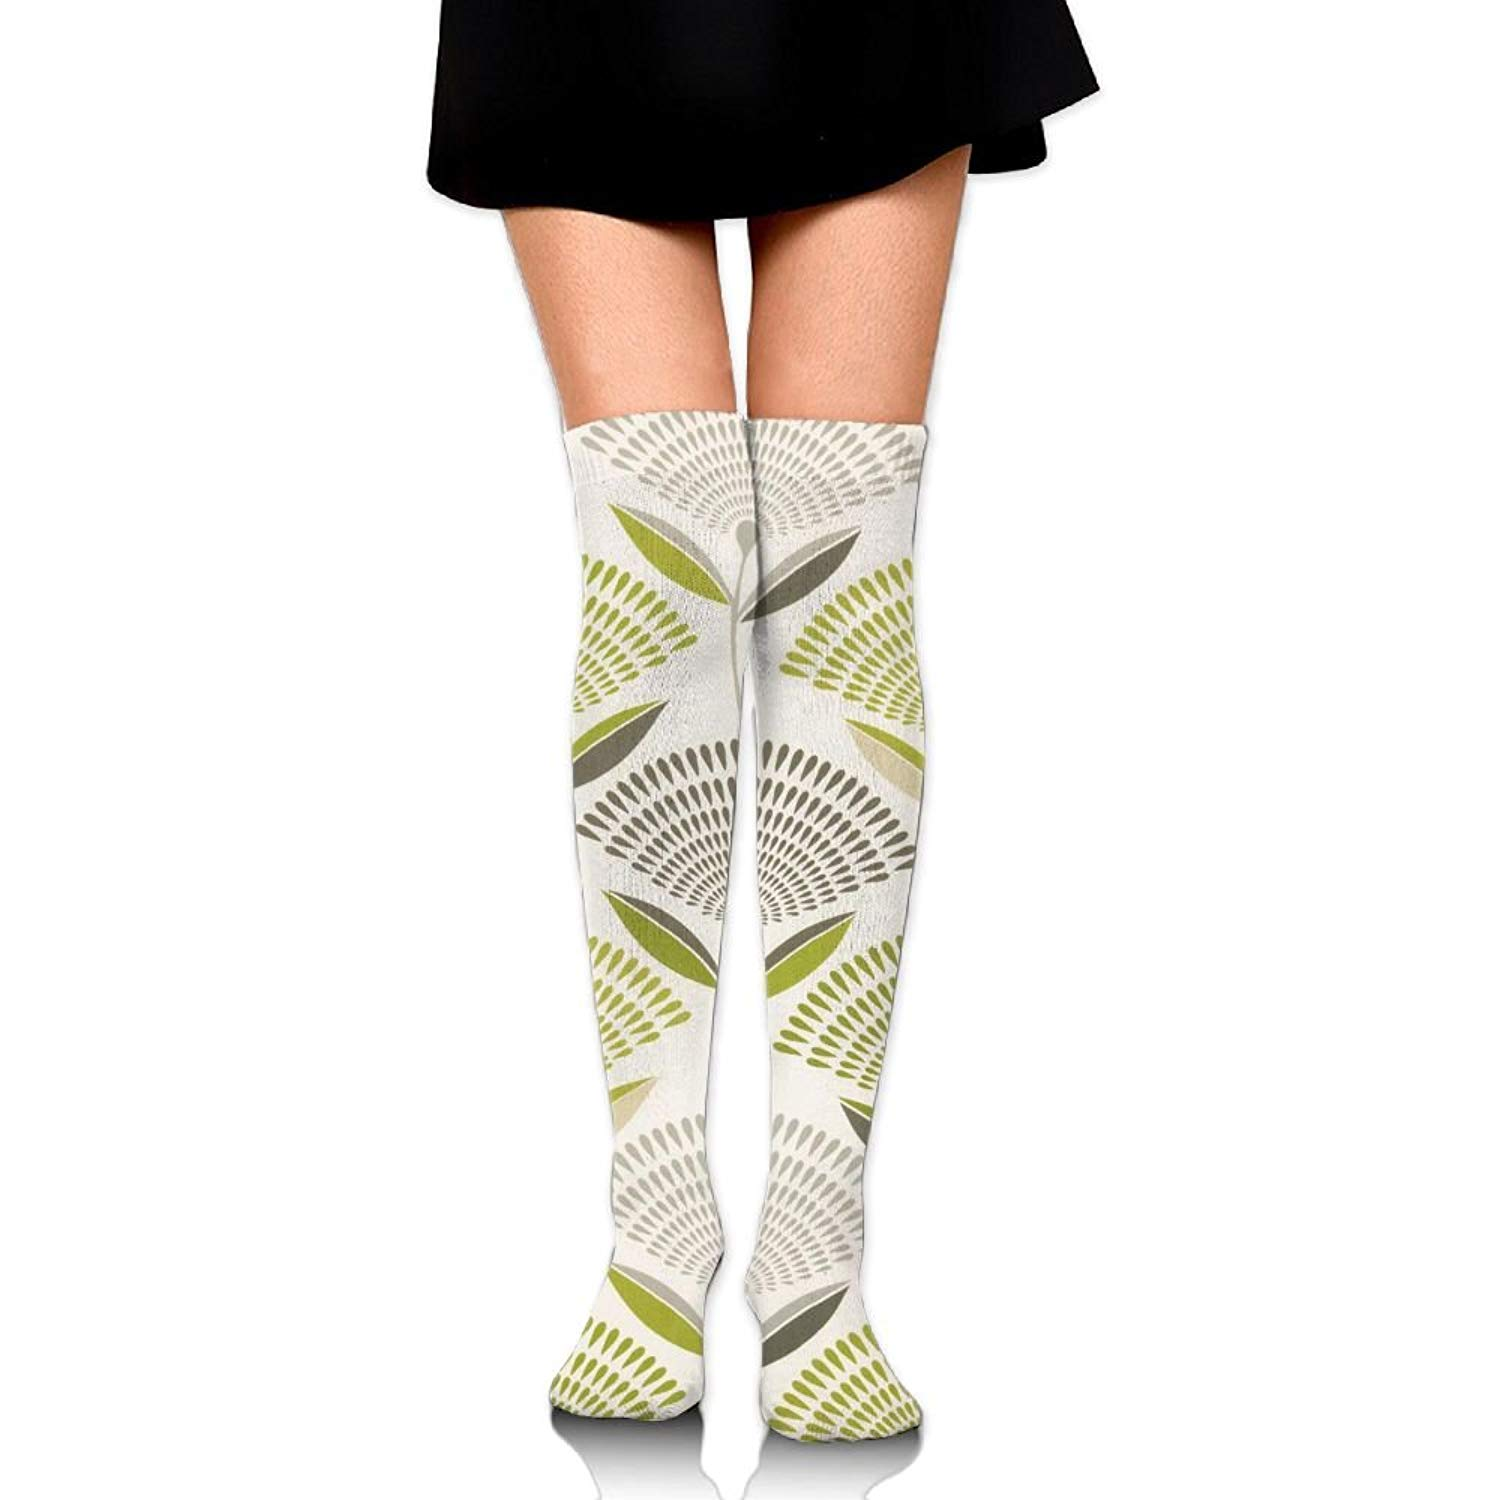 Zaqxsw Dandelion Plant Women Graphic Thigh High Socks Cotton Socks For Teen Girls